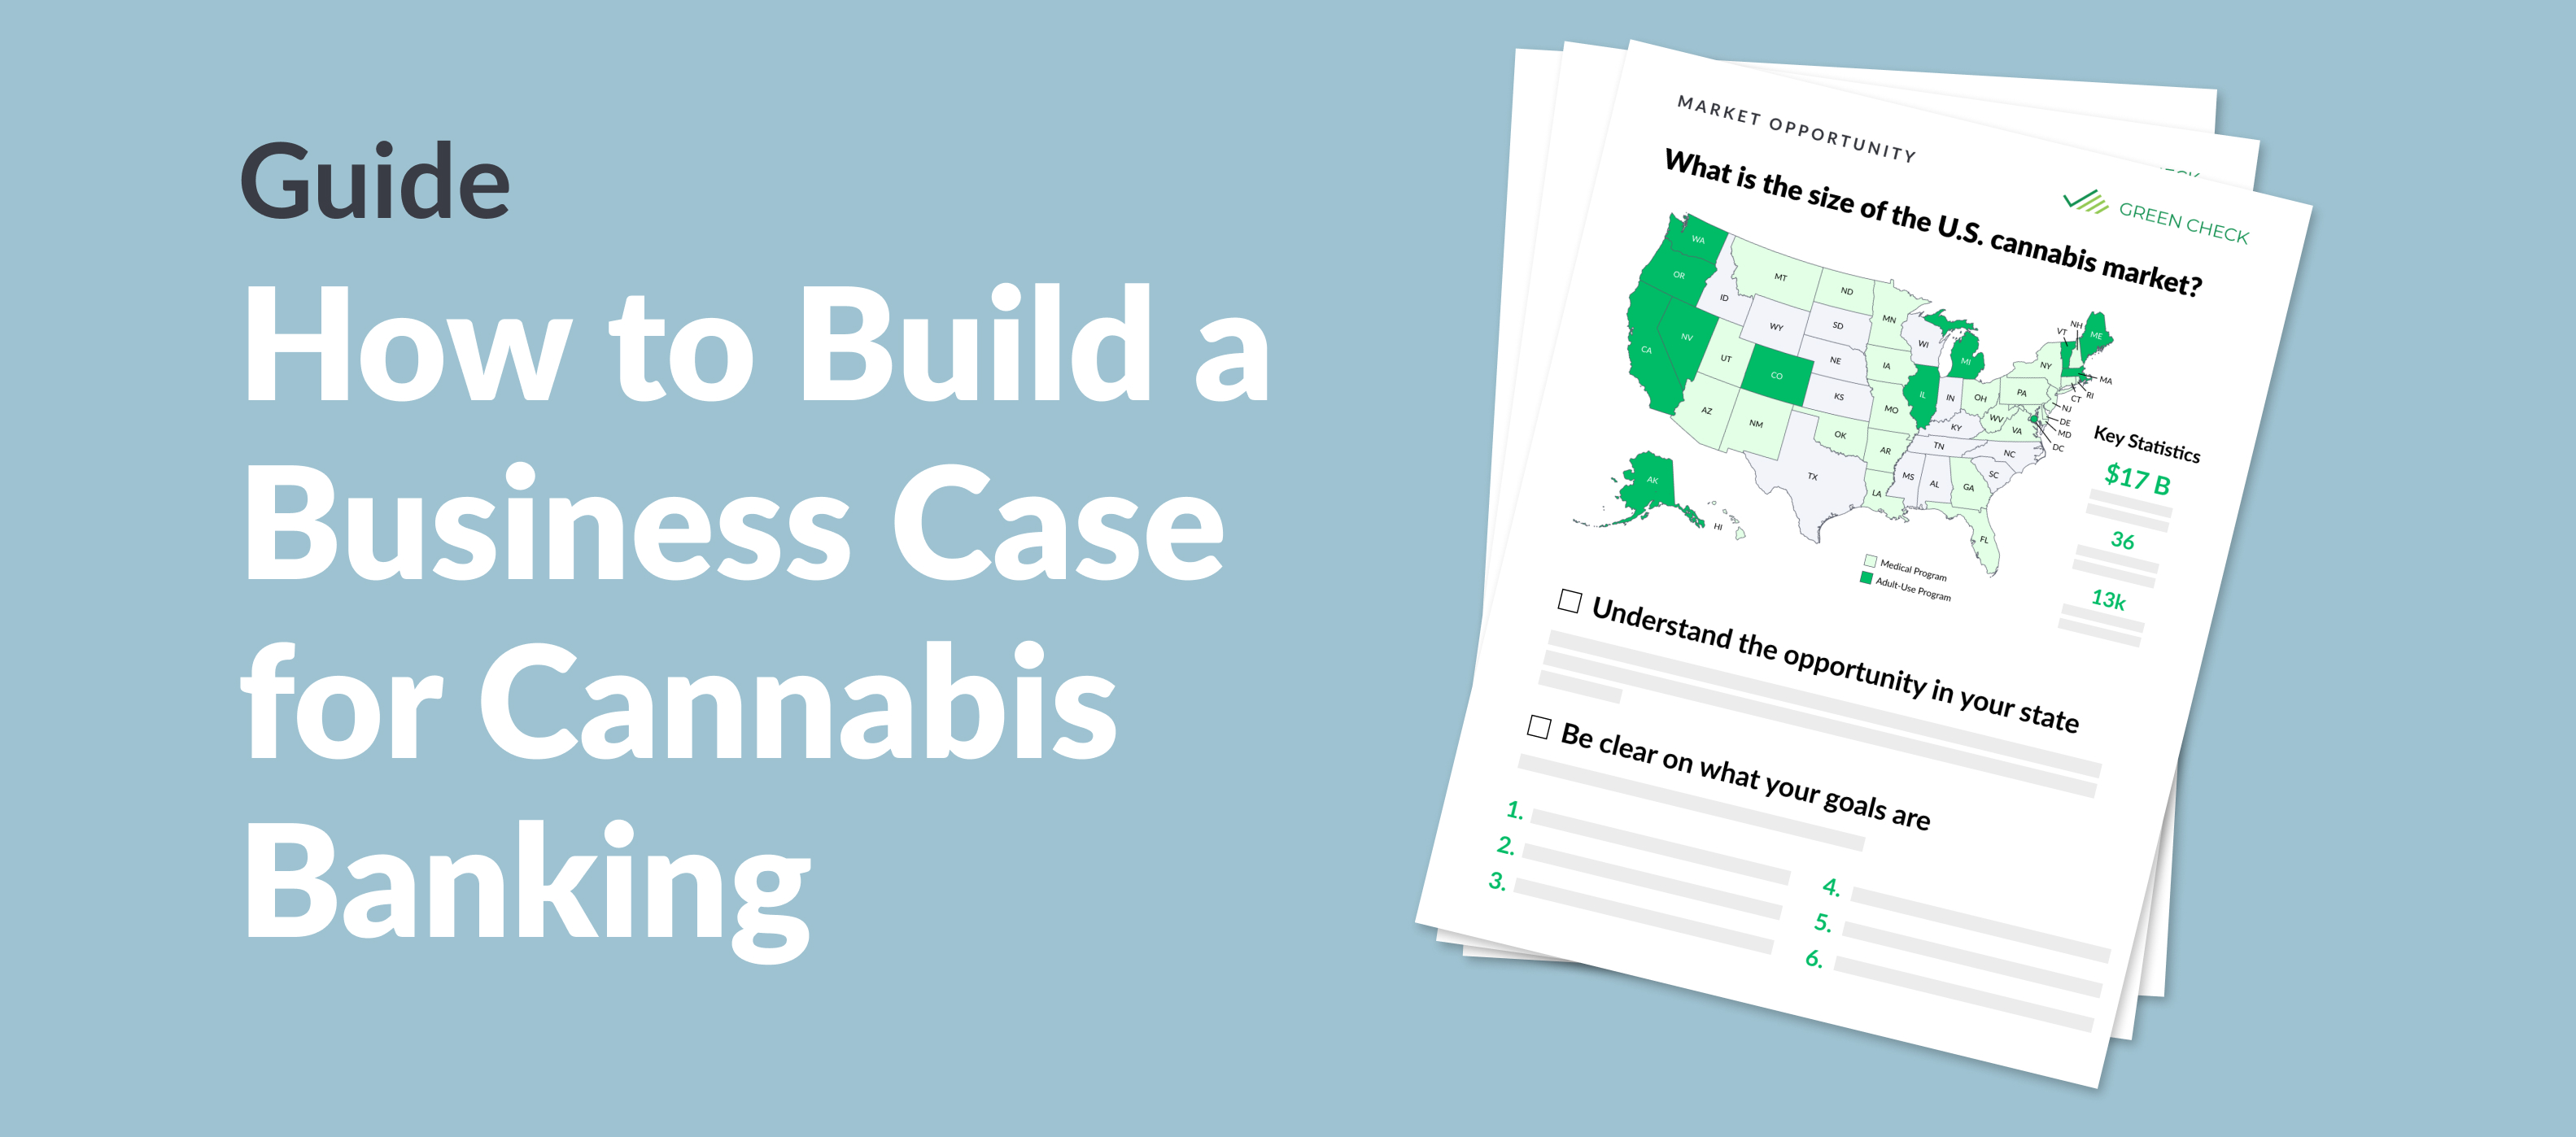 How to Build a Business Case for Cannabis Banking